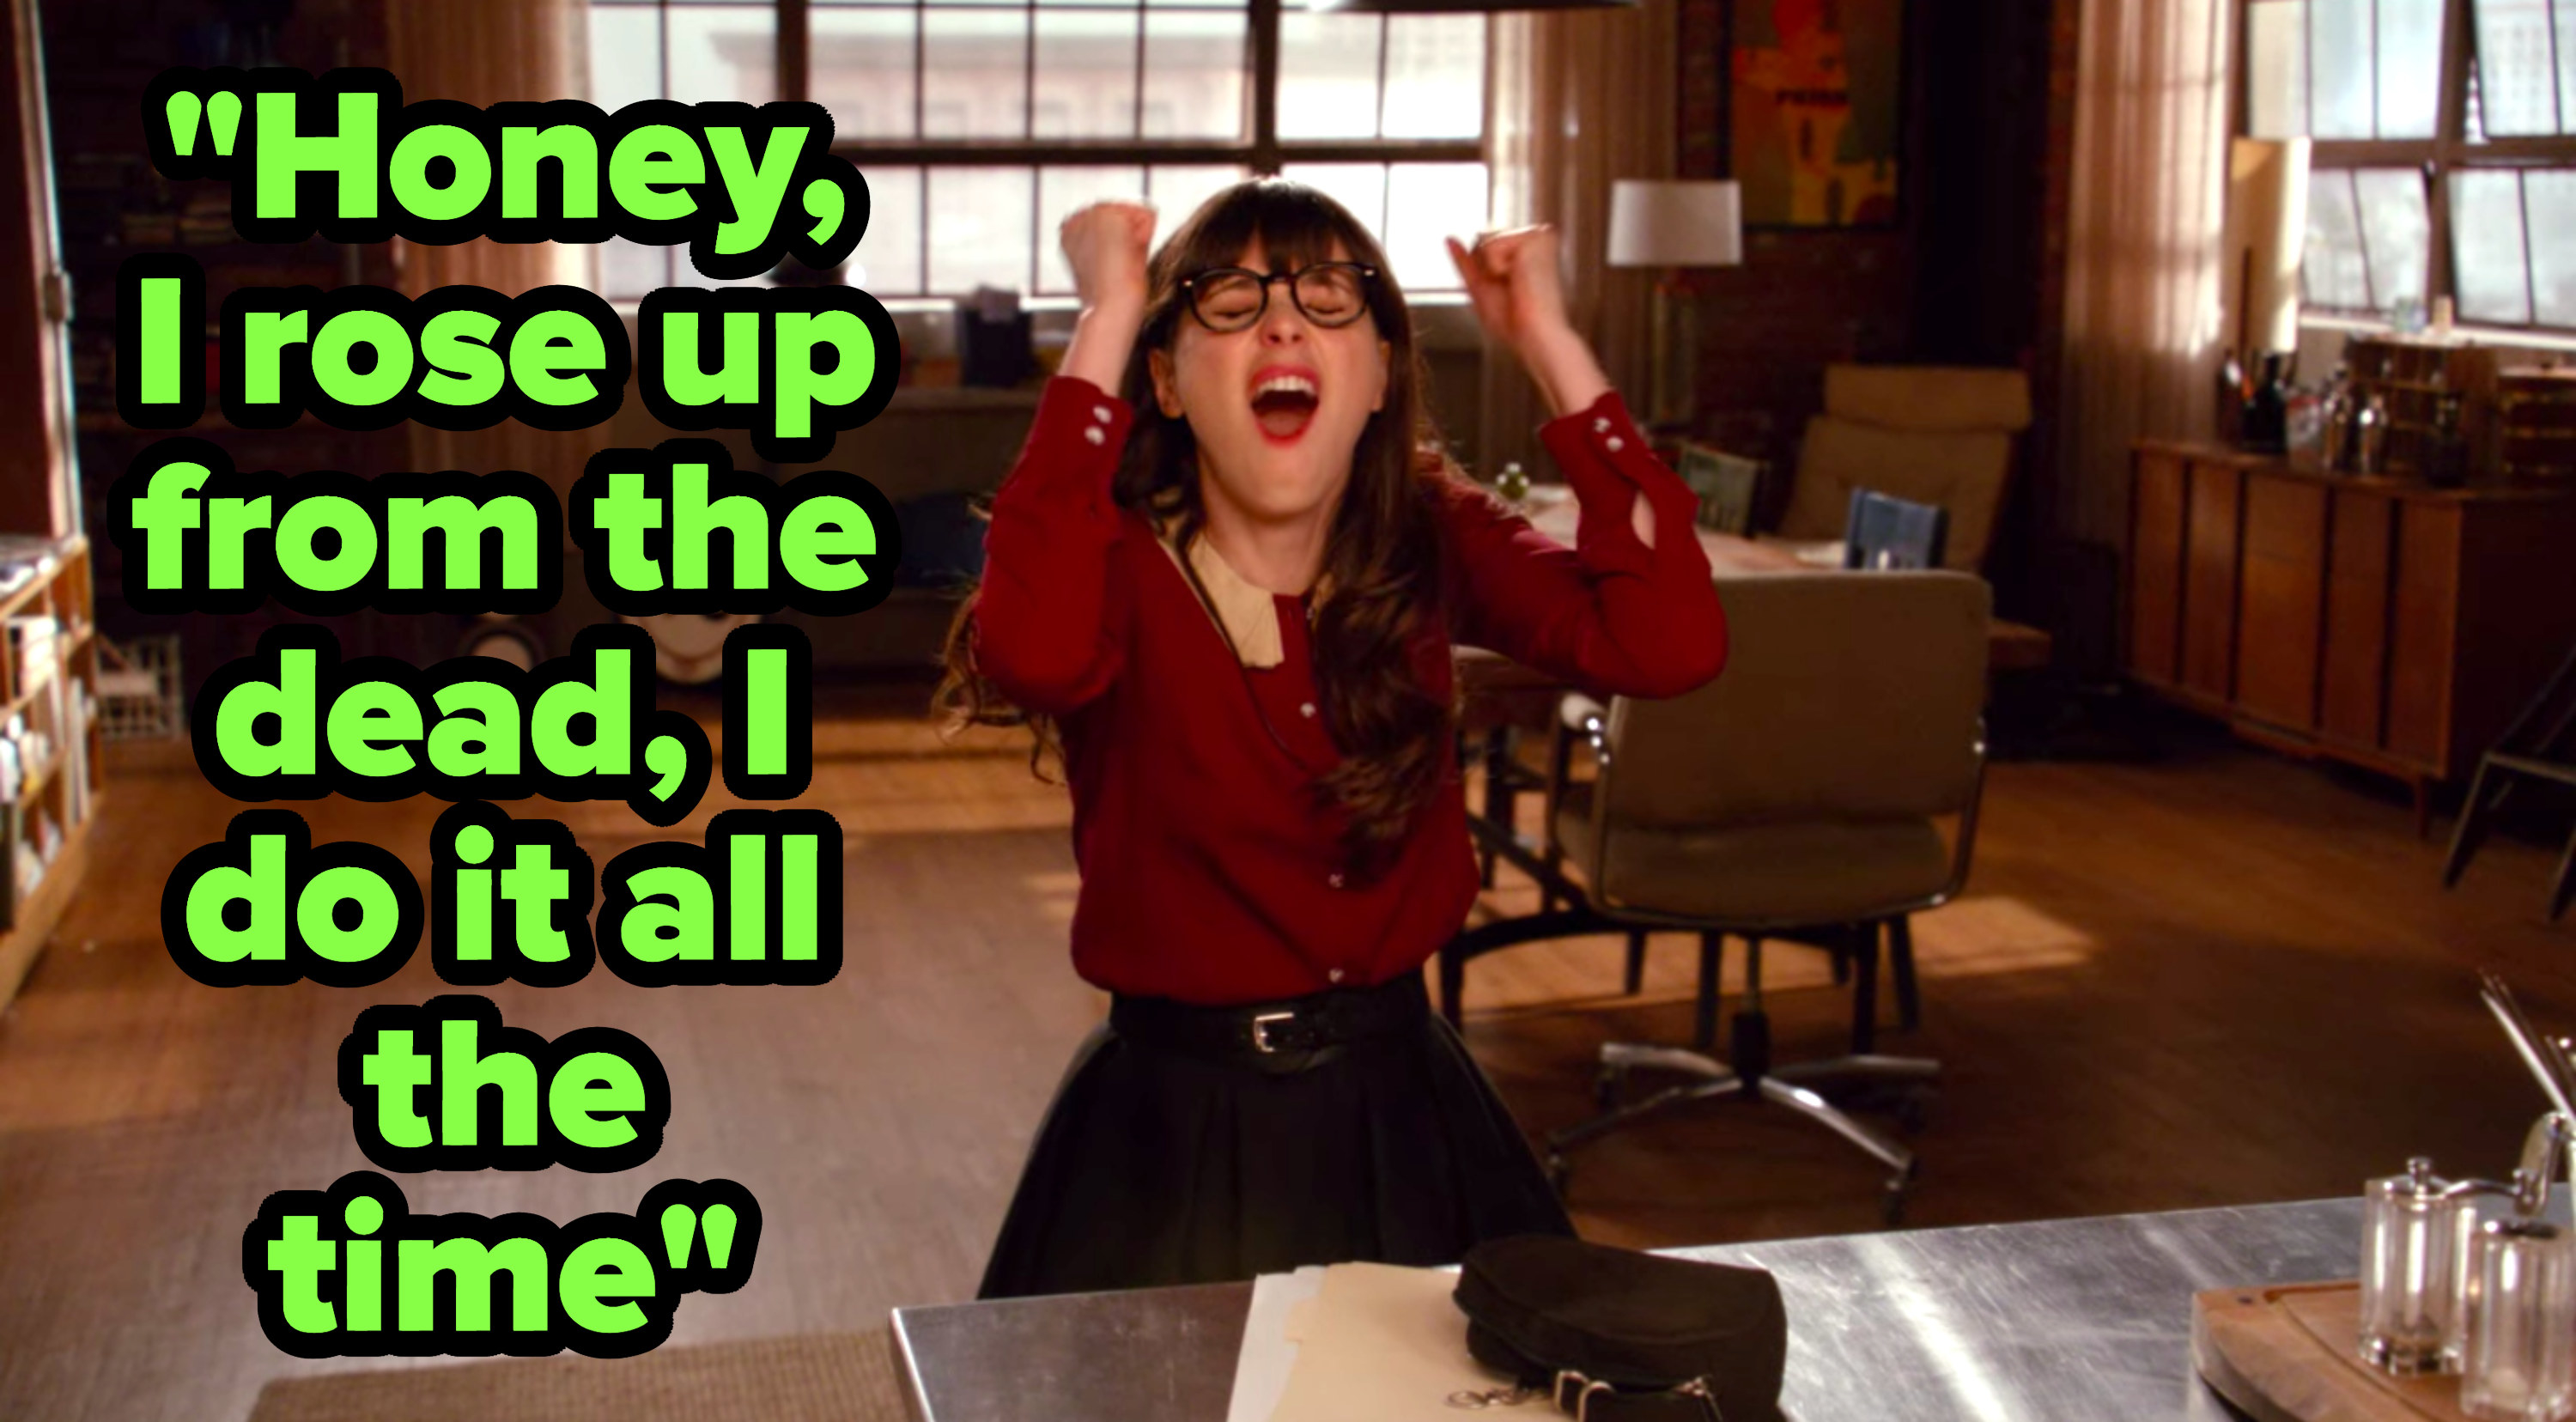 """""""Honey, I rose up from the dead, I do it all the time"""" written over Jess from """"New Girl"""" cheering"""